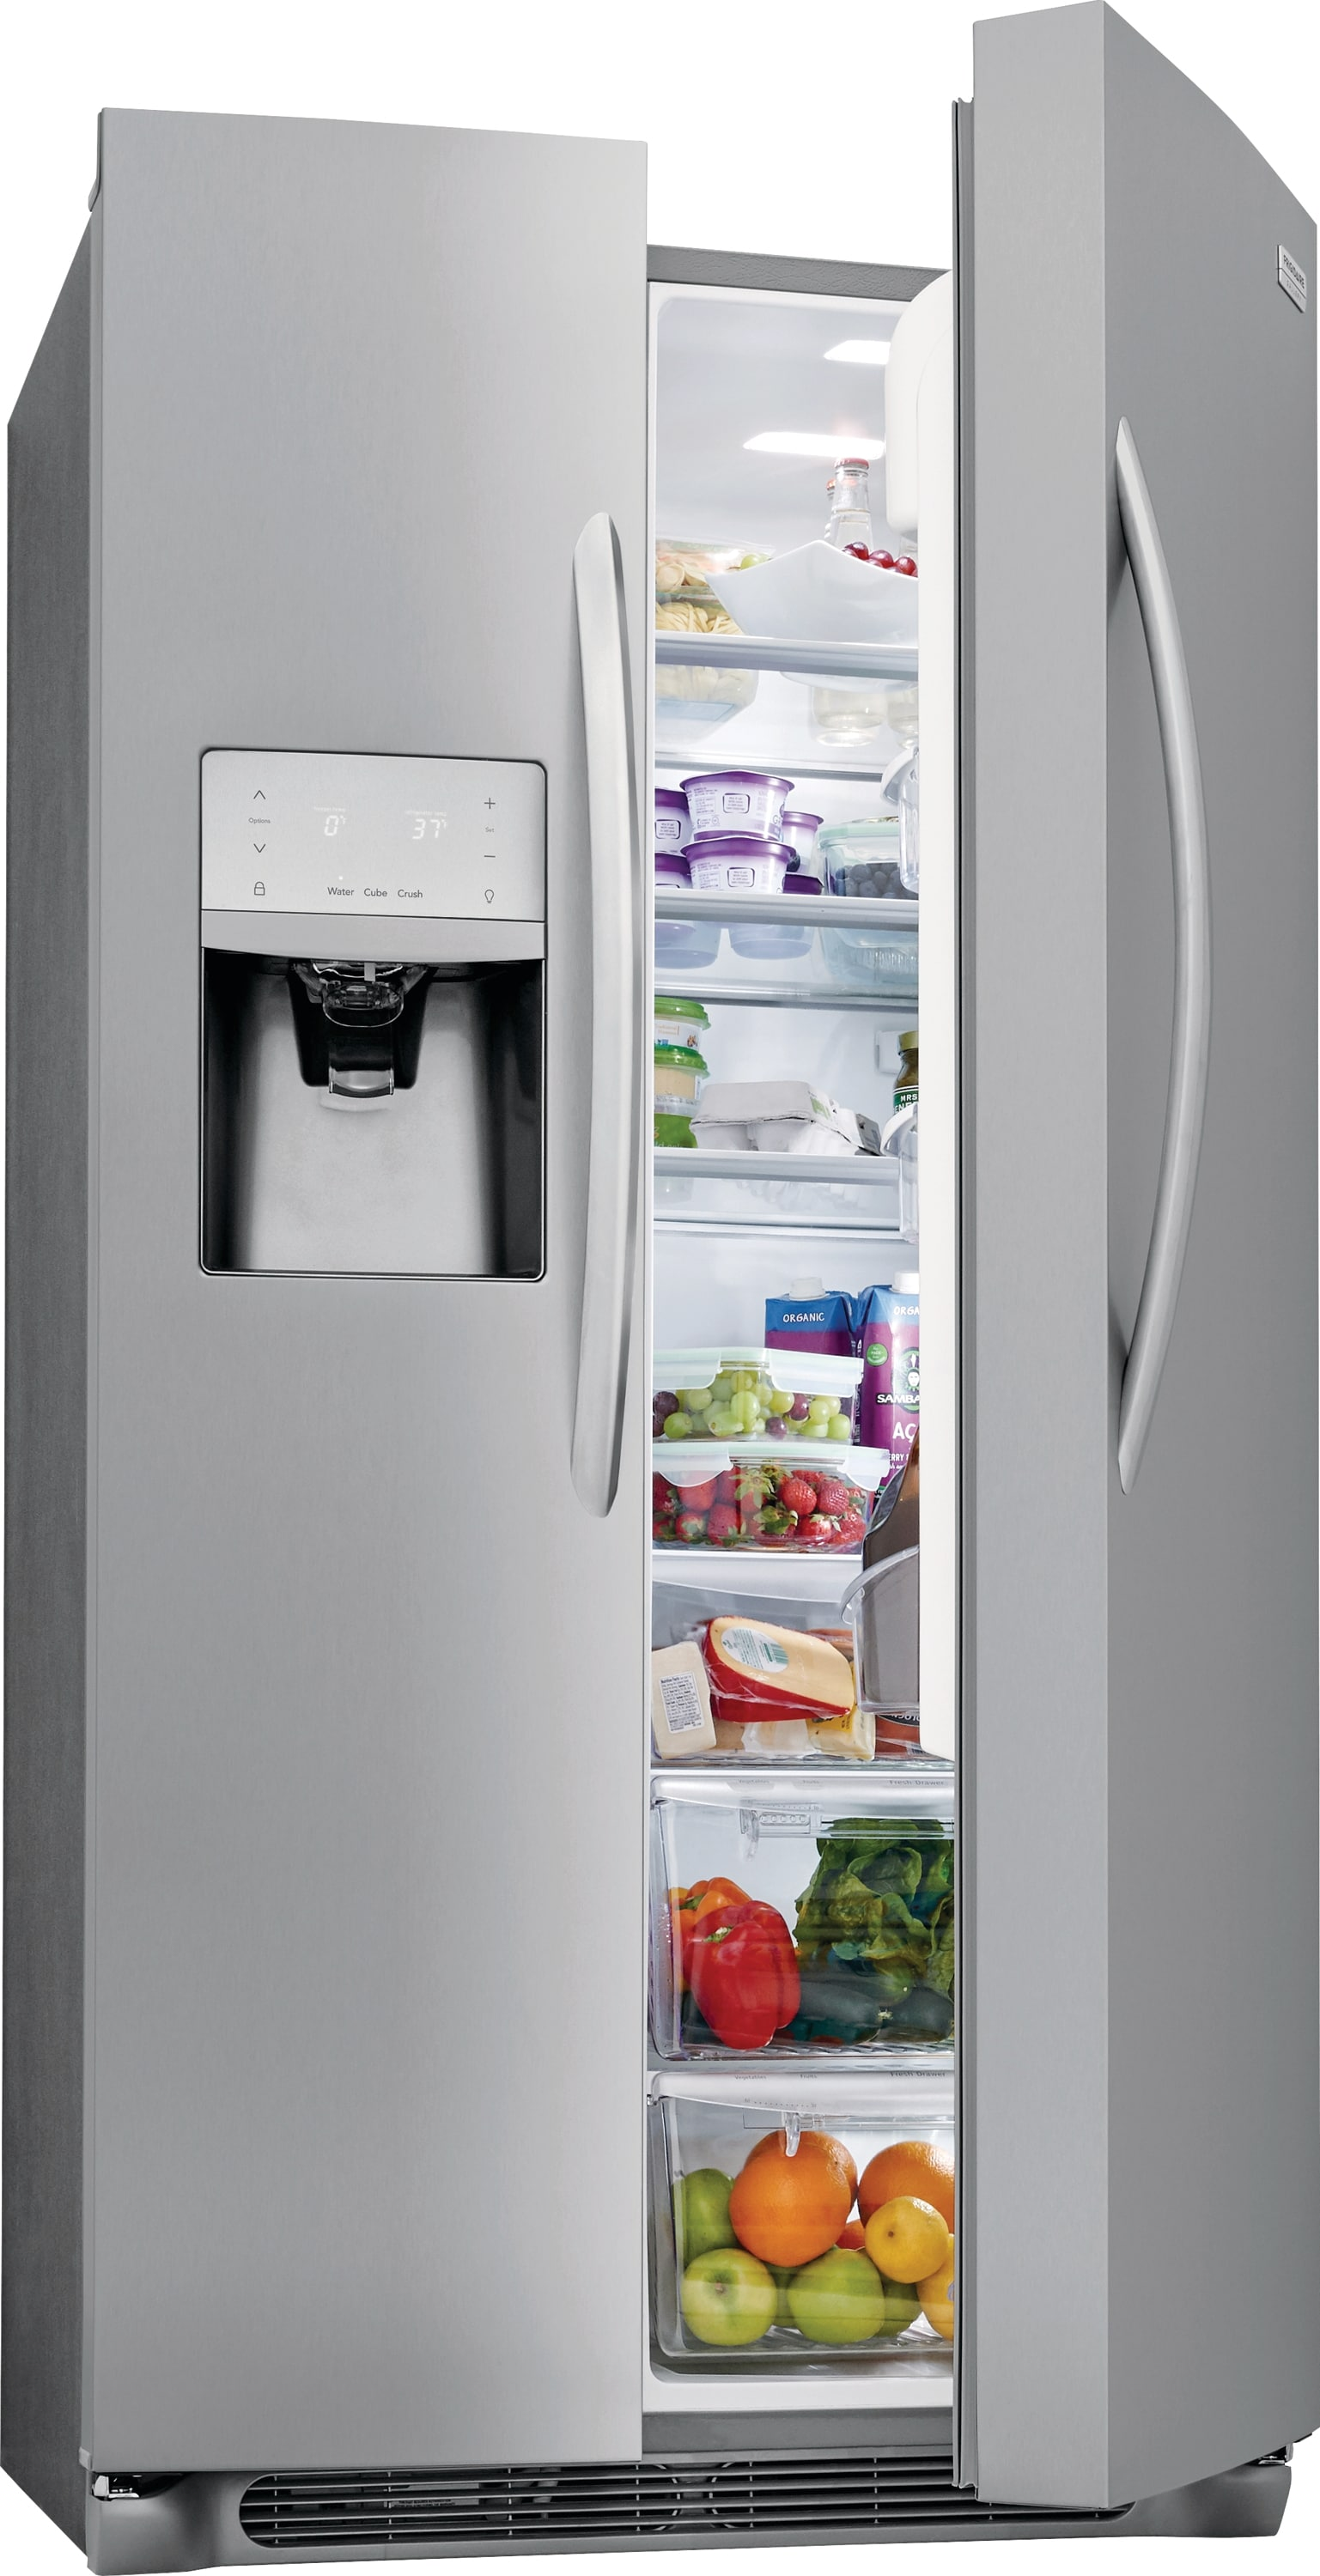 Model: FGSS2635TF | 25.5 Cu. Ft. Side-by-Side Refrigerator